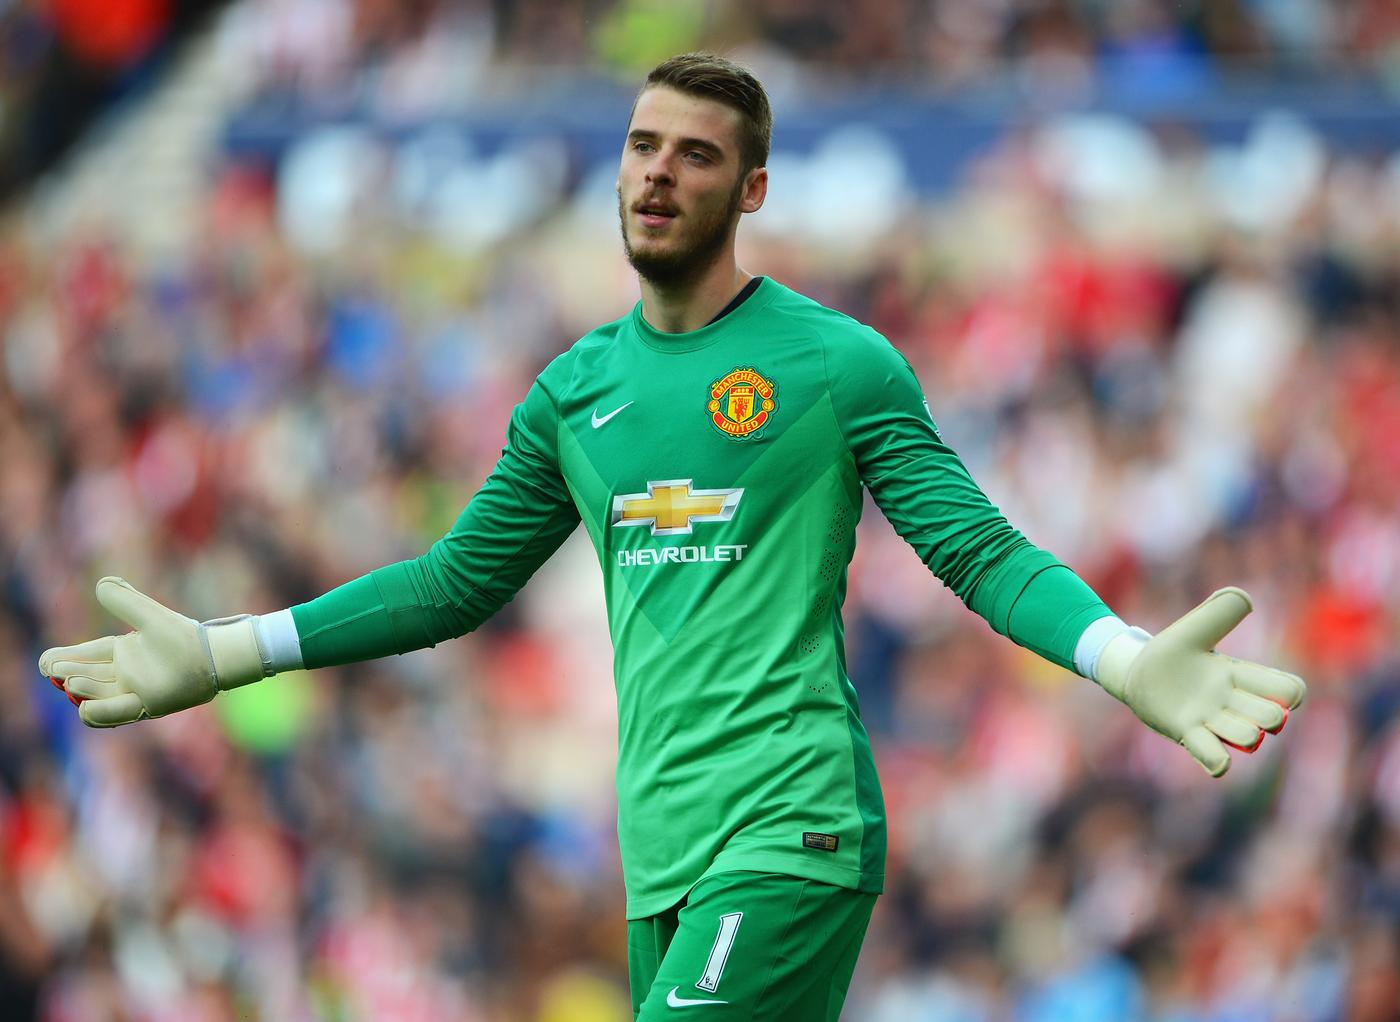 David de Gea will be welcomed back into Manchester United first team following collapsed transfer, says Mark Ogden